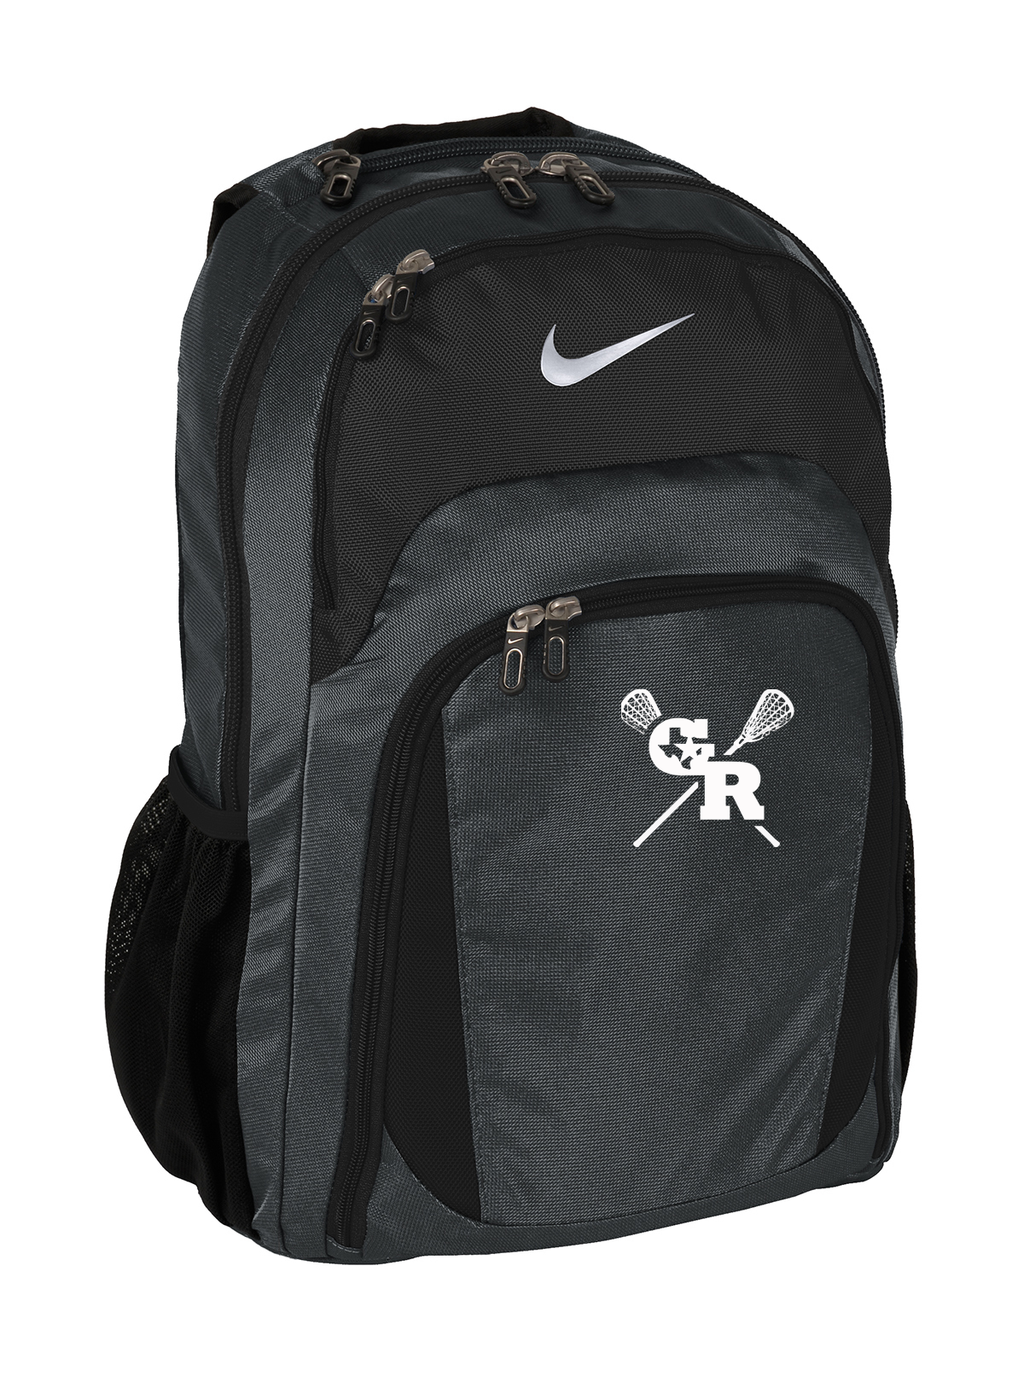 GR Longhorns Lacrosse Nike Backpack